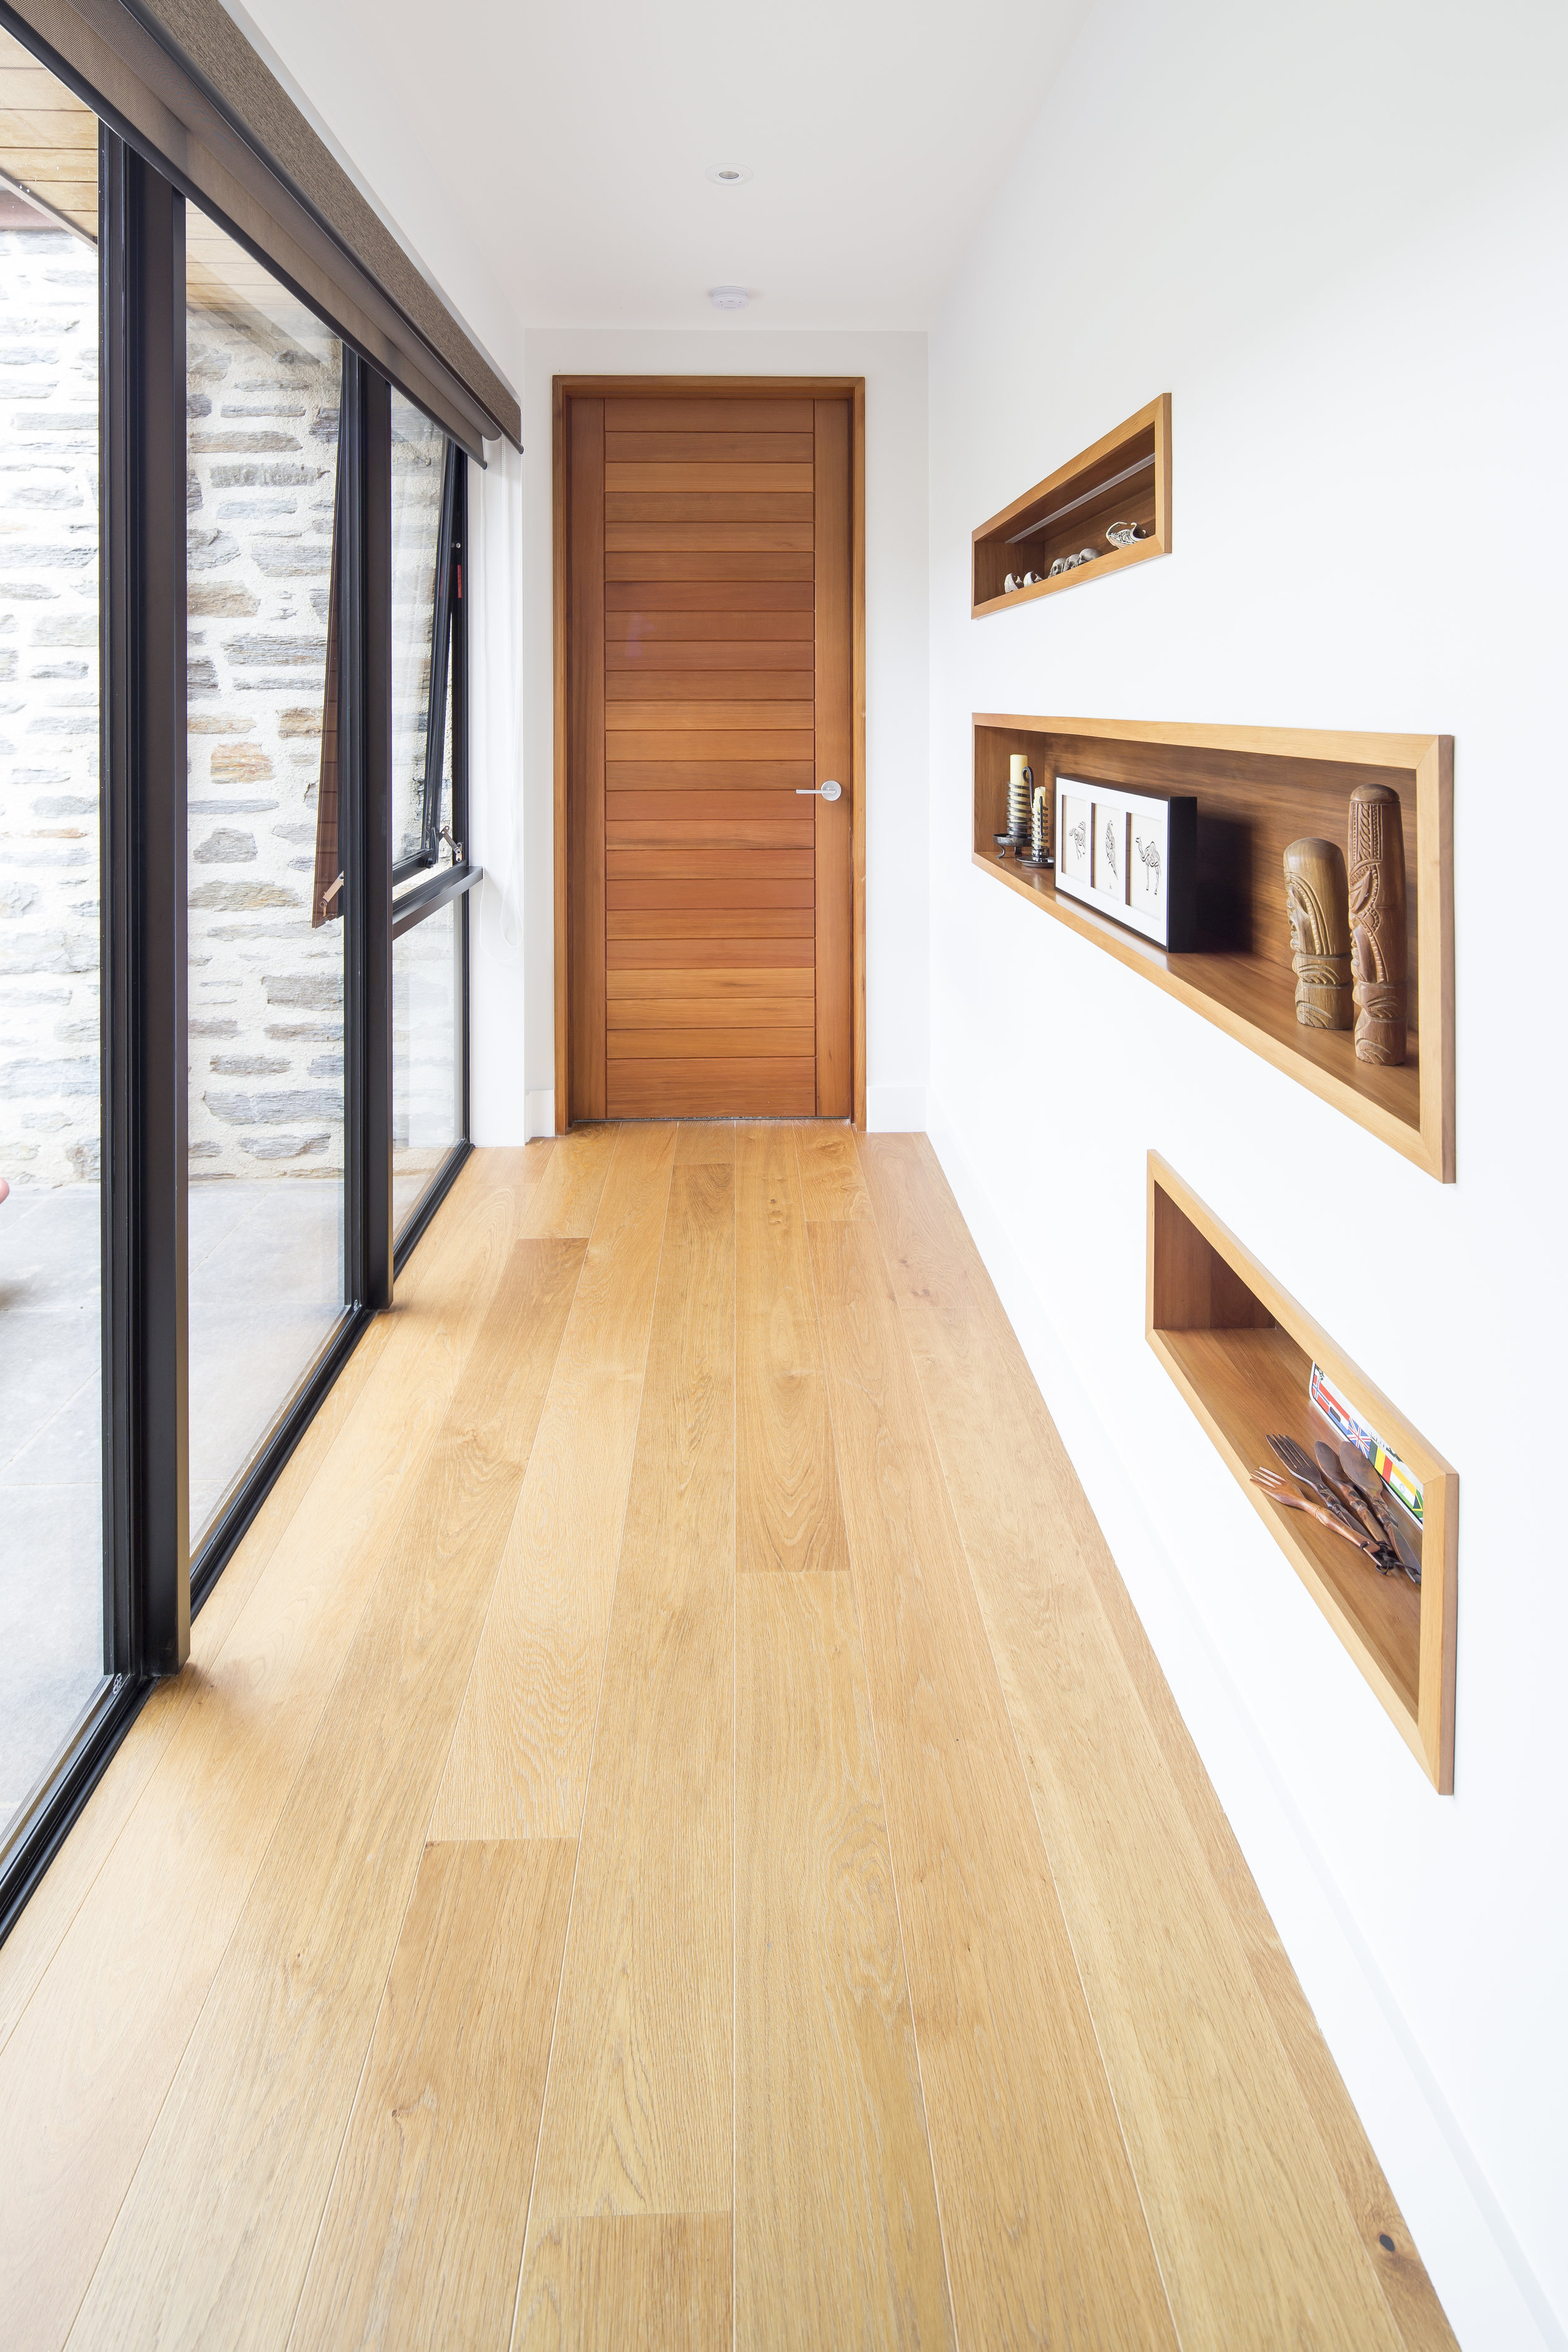 Gorgeous timber recesses feature family treasures